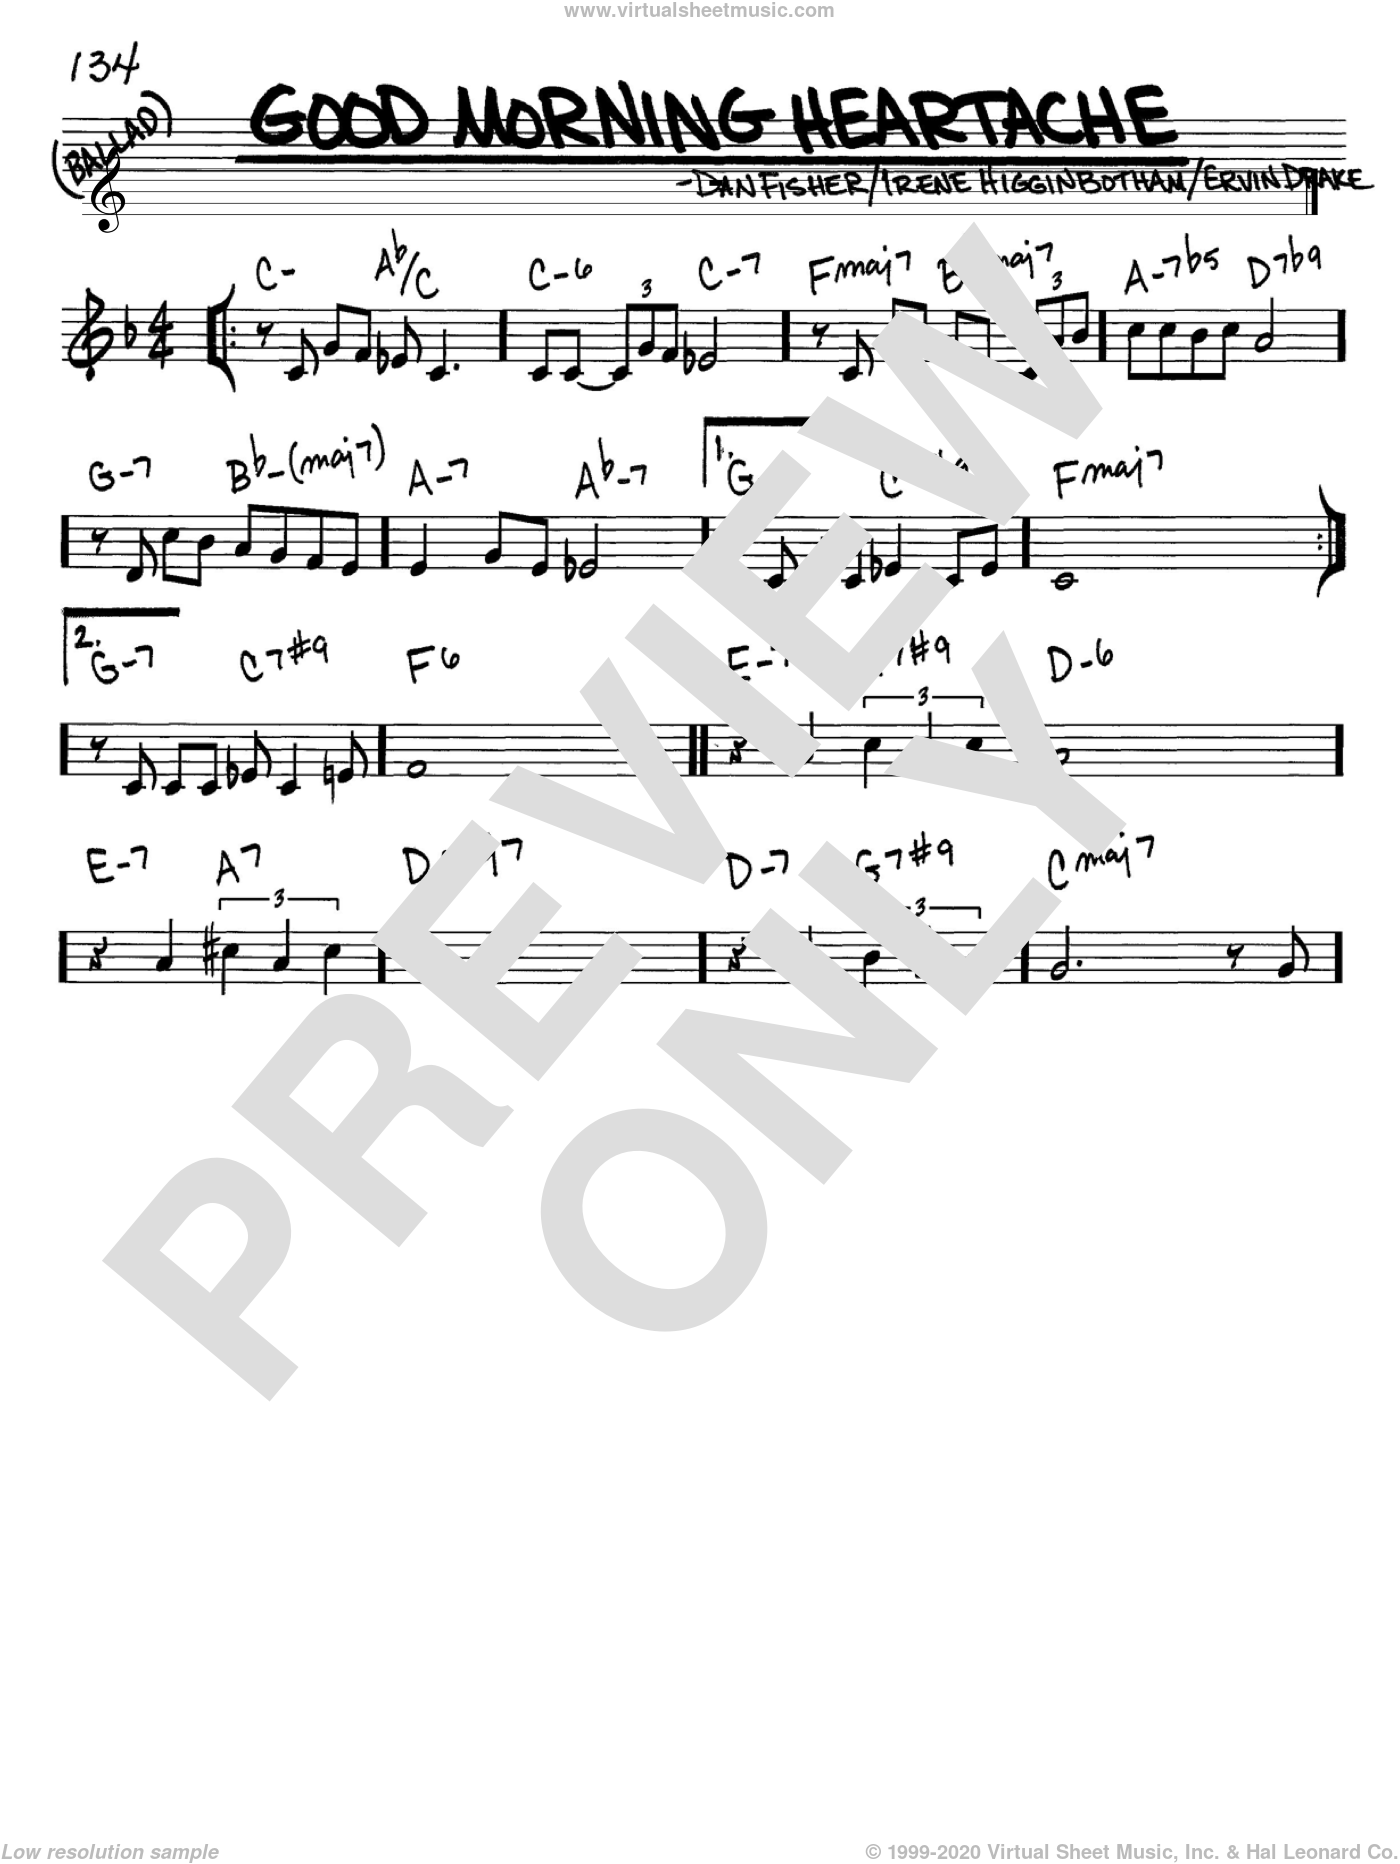 Good Morning Heartache sheet music for voice and other instruments (C) by Billie Holiday, Diana Ross, Dan Fisher, Ervin Drake and Irene Higginbotham. Score Image Preview.